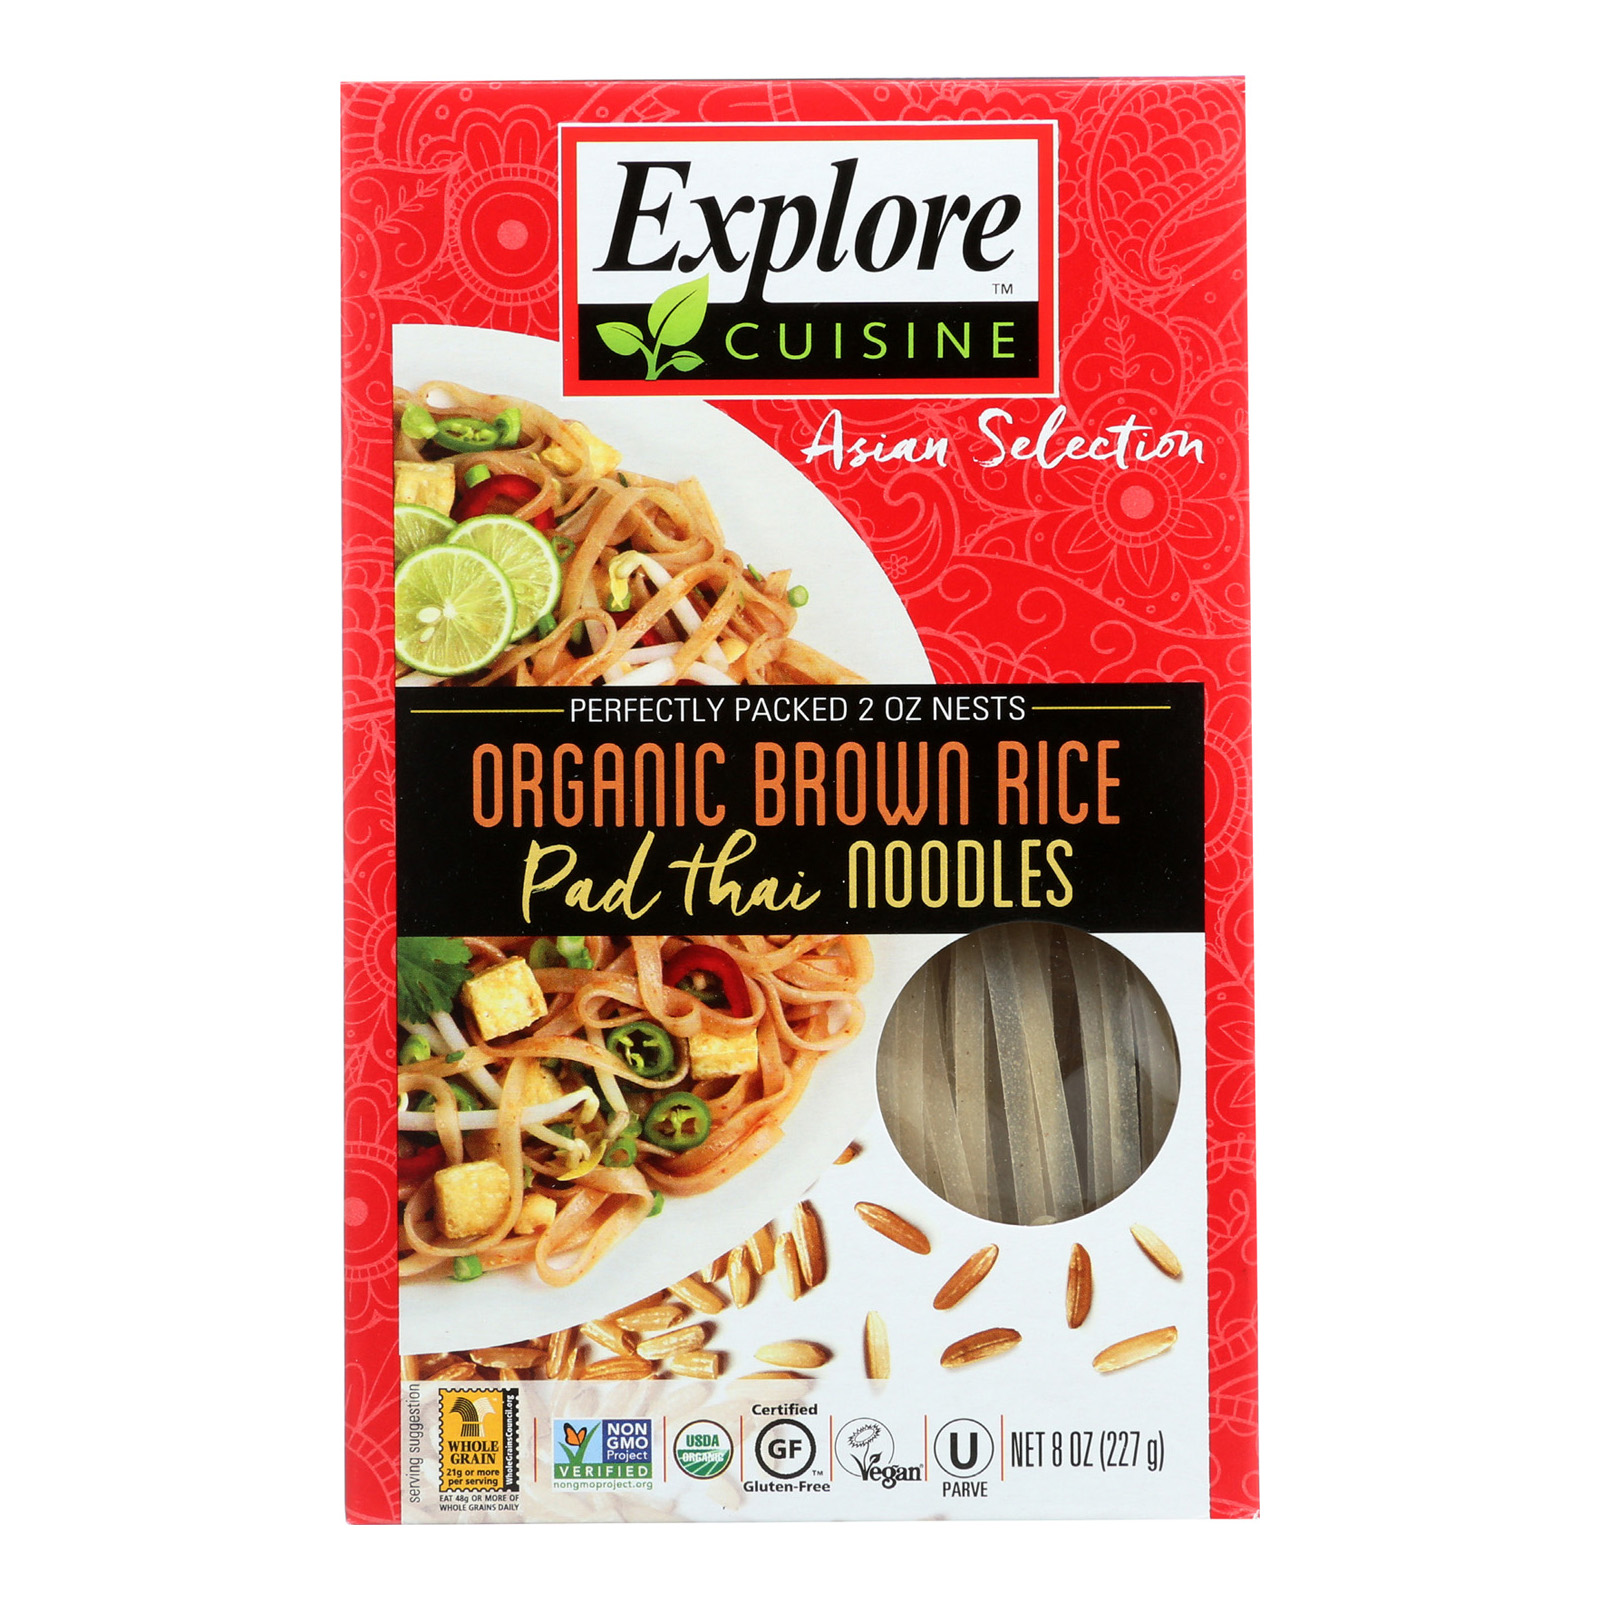 Explore Cuisine Organic Brown Rice - Pad Thai Noodles - Case Of 6 - 8 Oz.